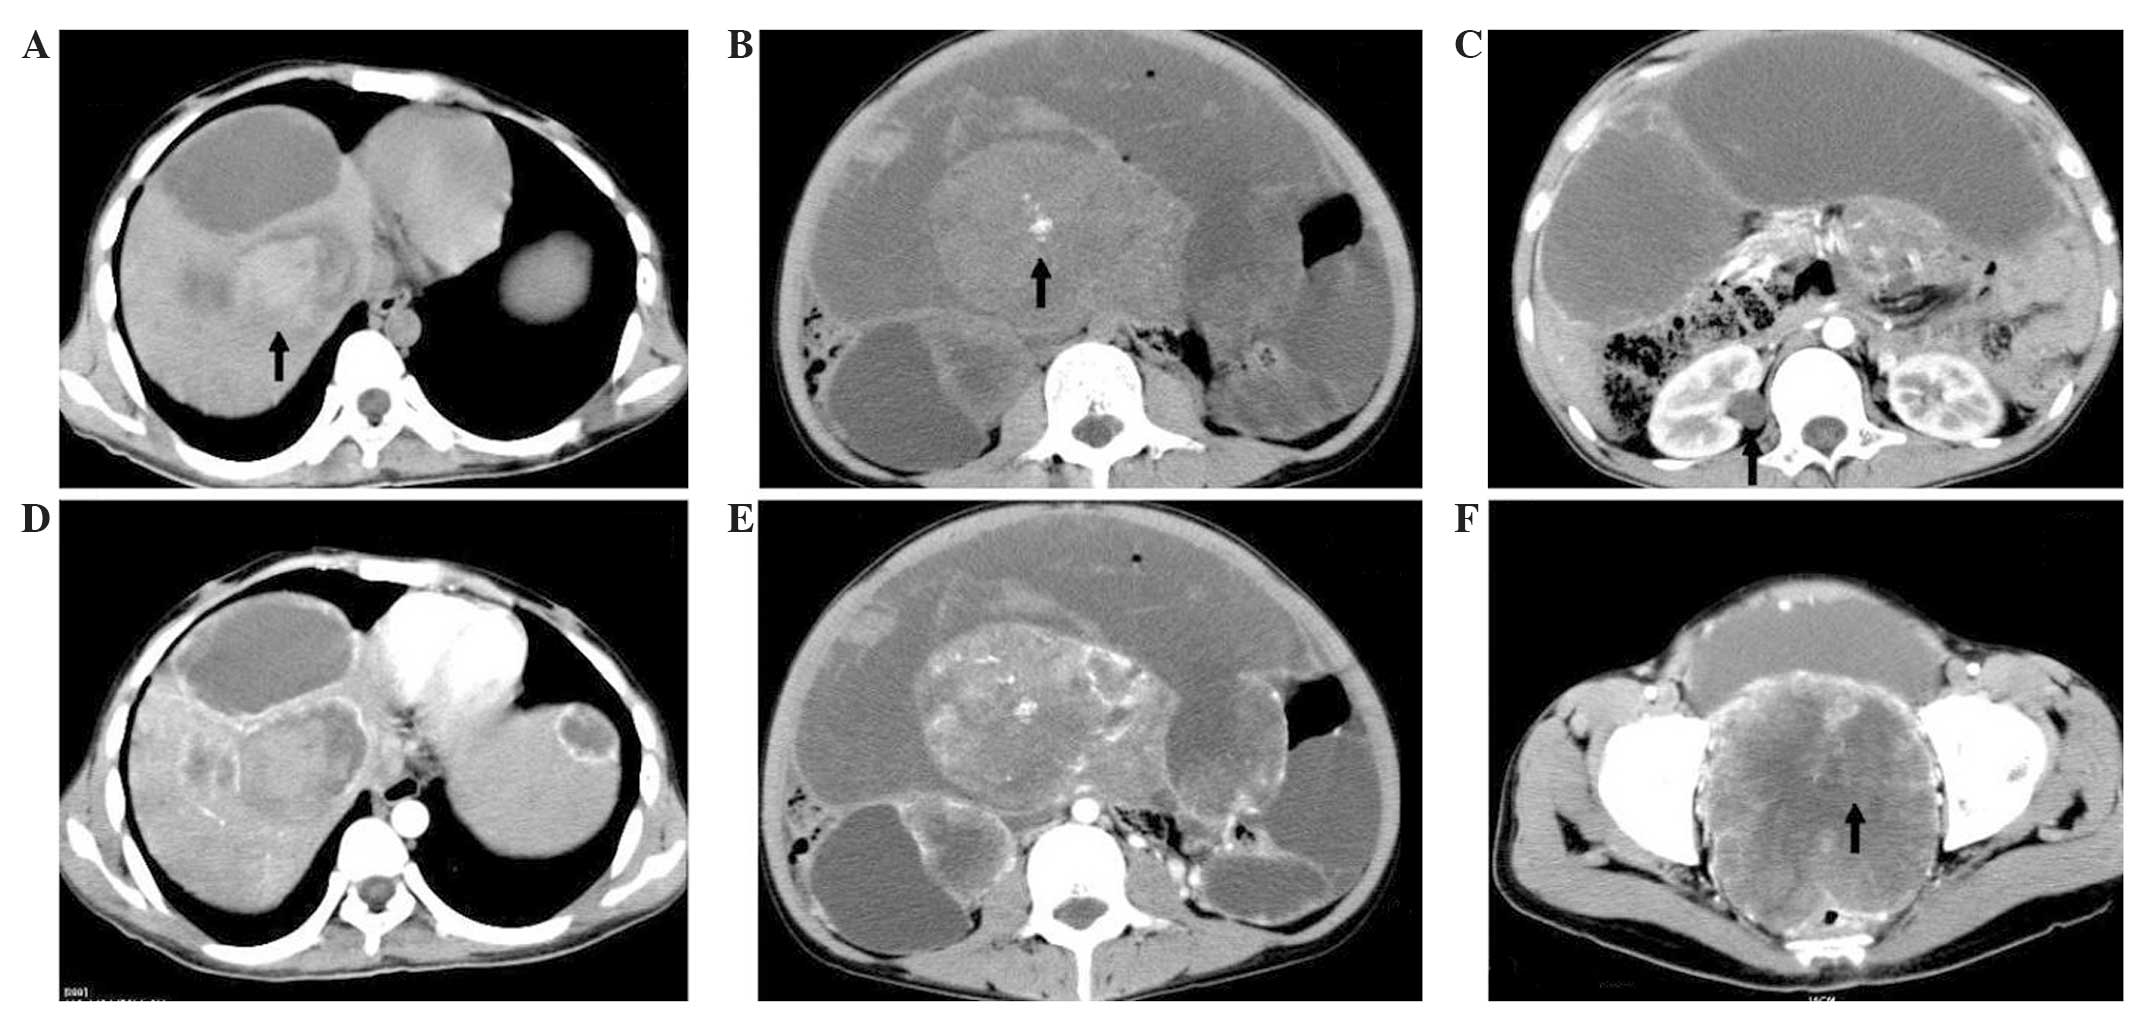 E Contrast Enhanced CT Image Of The Abdomen Same View As B Revealed A Heterogeneously Mass Lesion F Scan